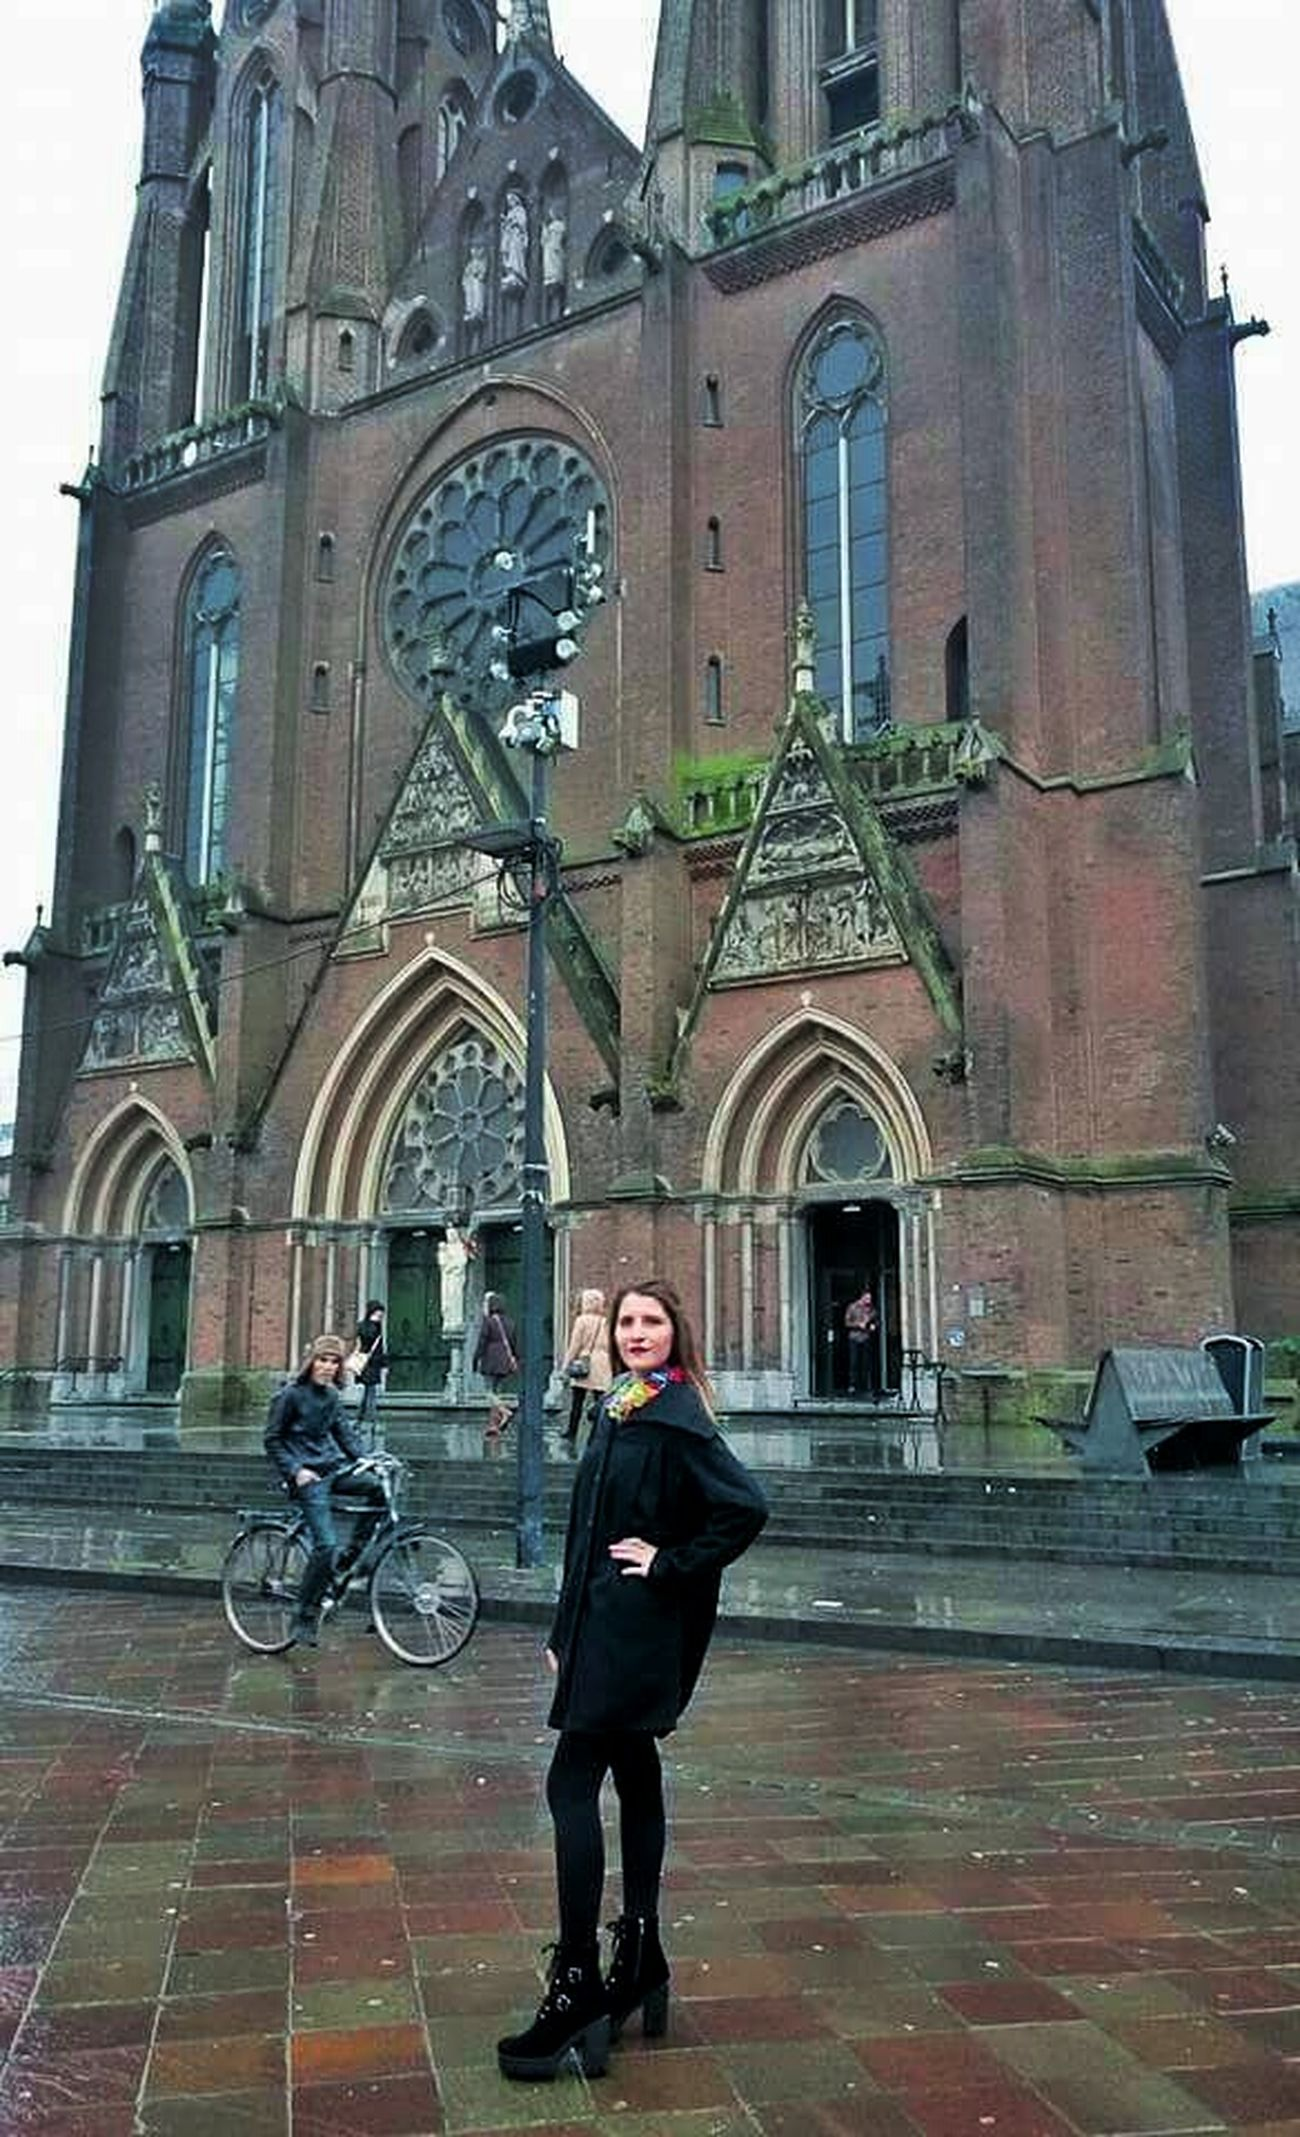 The OO Mission Holland❤ Amsterdam Amsterdam.nl Amsterdam Centraal Adventure Travel Historical The Church katharina church NL ⛪